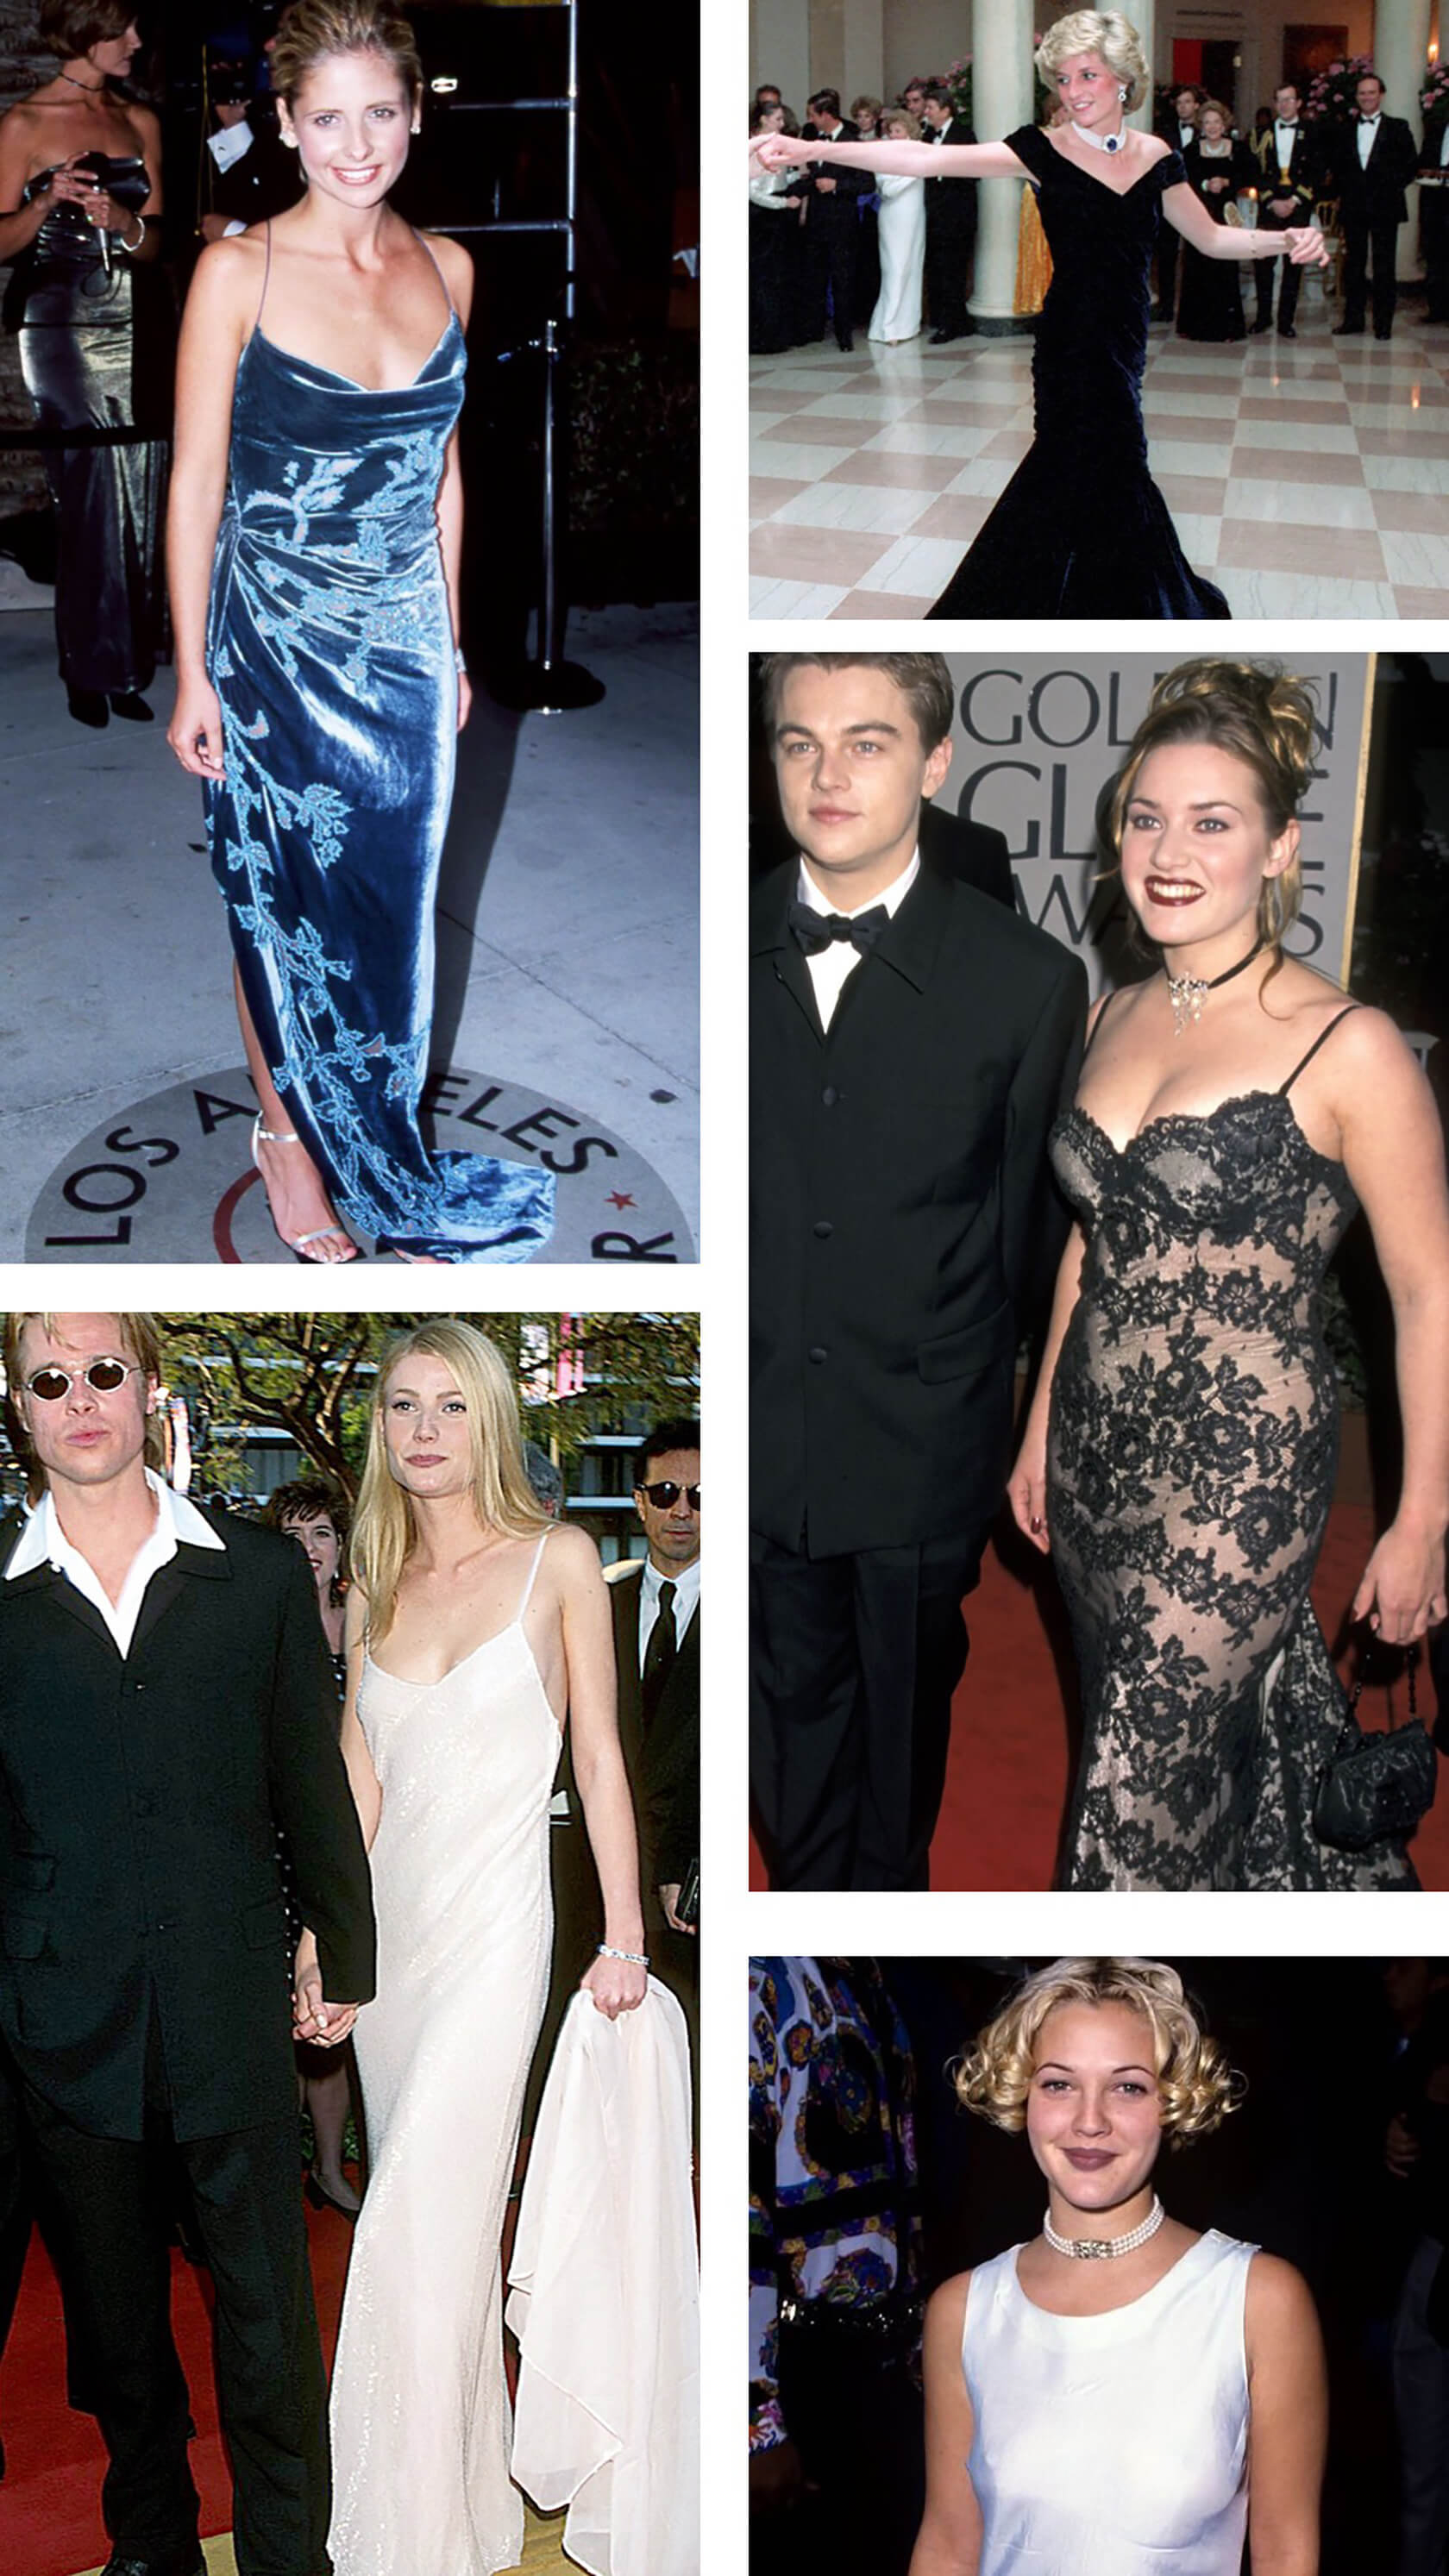 Sydne Style shows what to wear to 90s prom party with 90s red carpet dress inspiration